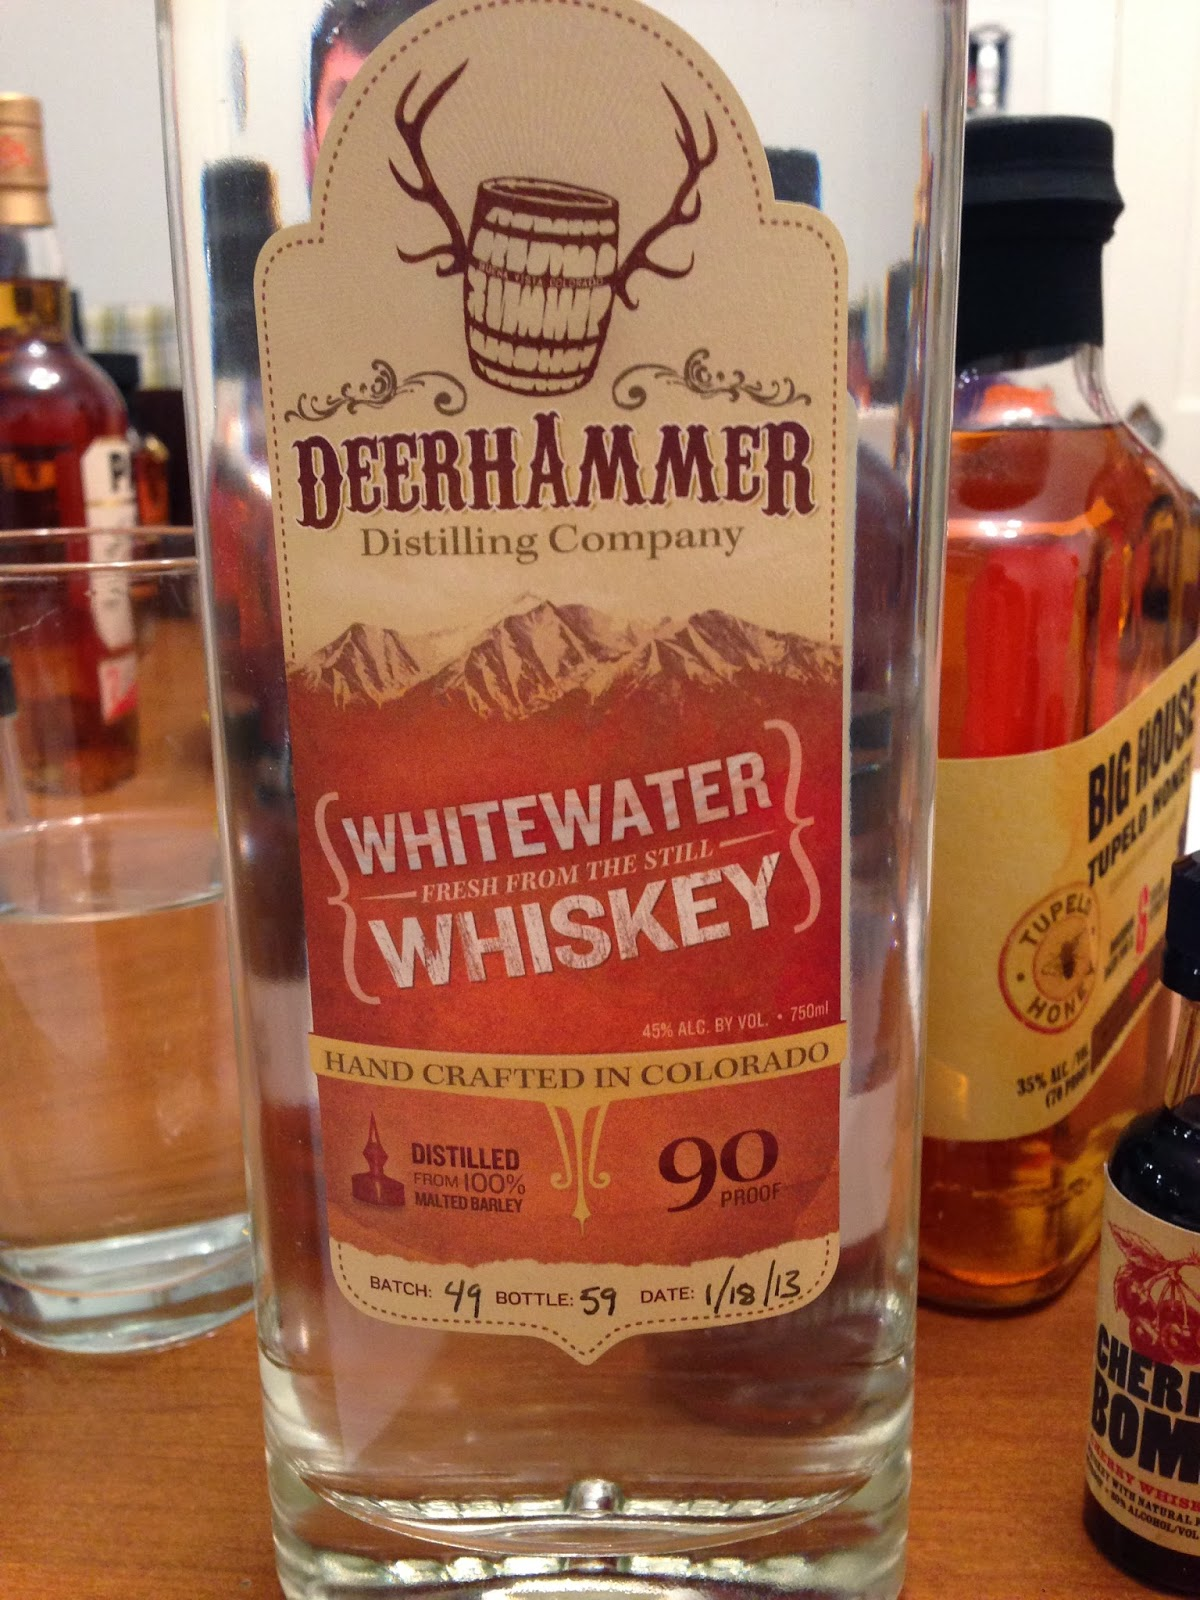 Deerhammer Whitewater Whiskey